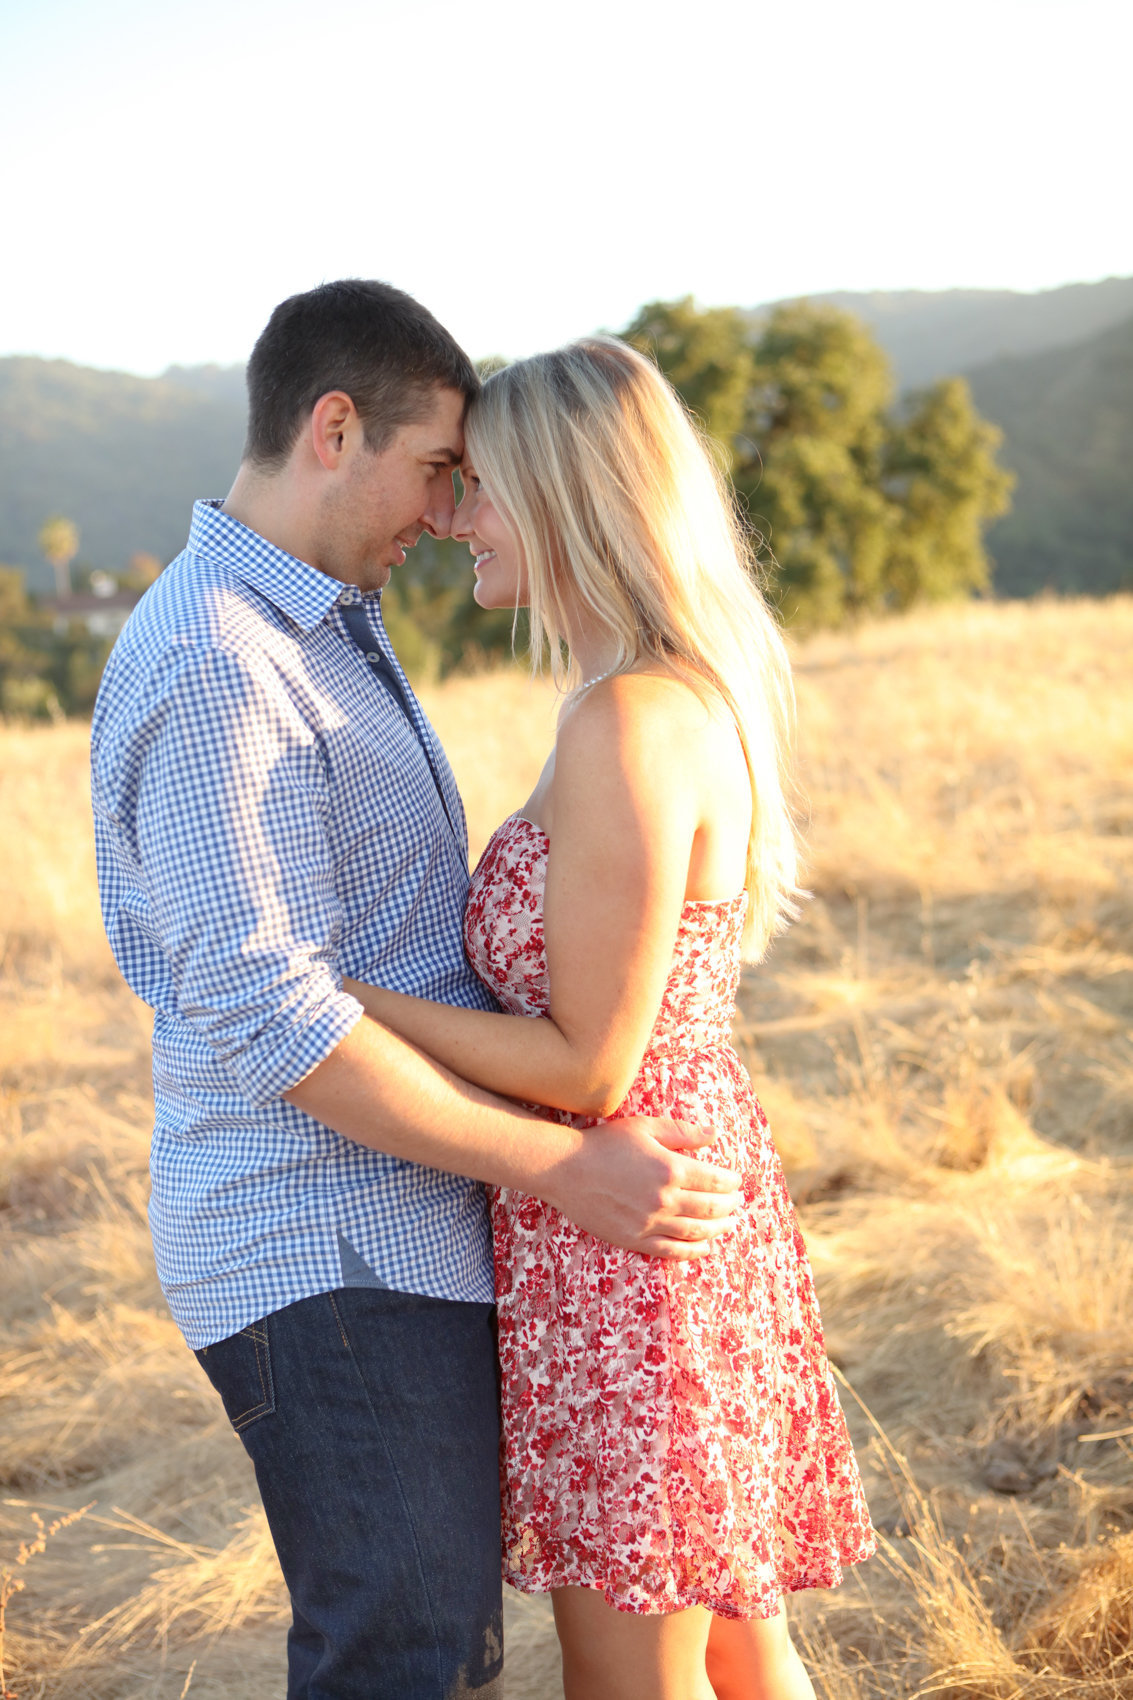 Young couple engagement portraits los altos california golden hour